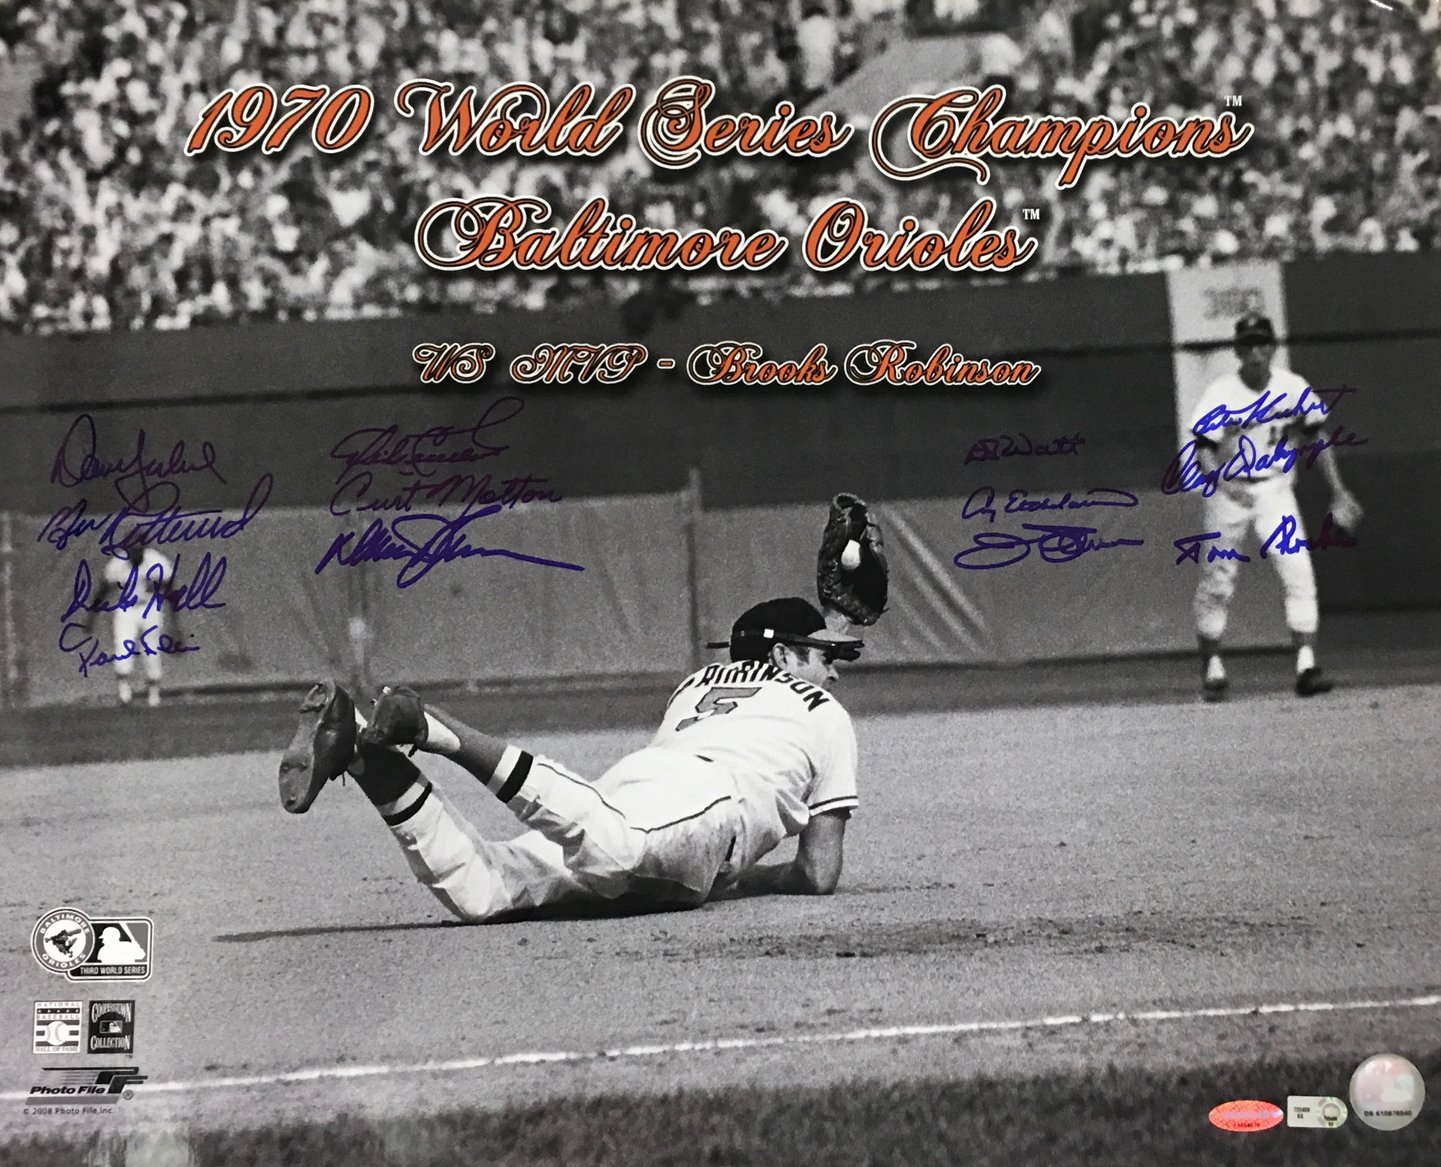 1970 World Series Champion Baltimore Orioles Multi-Signed 16x20